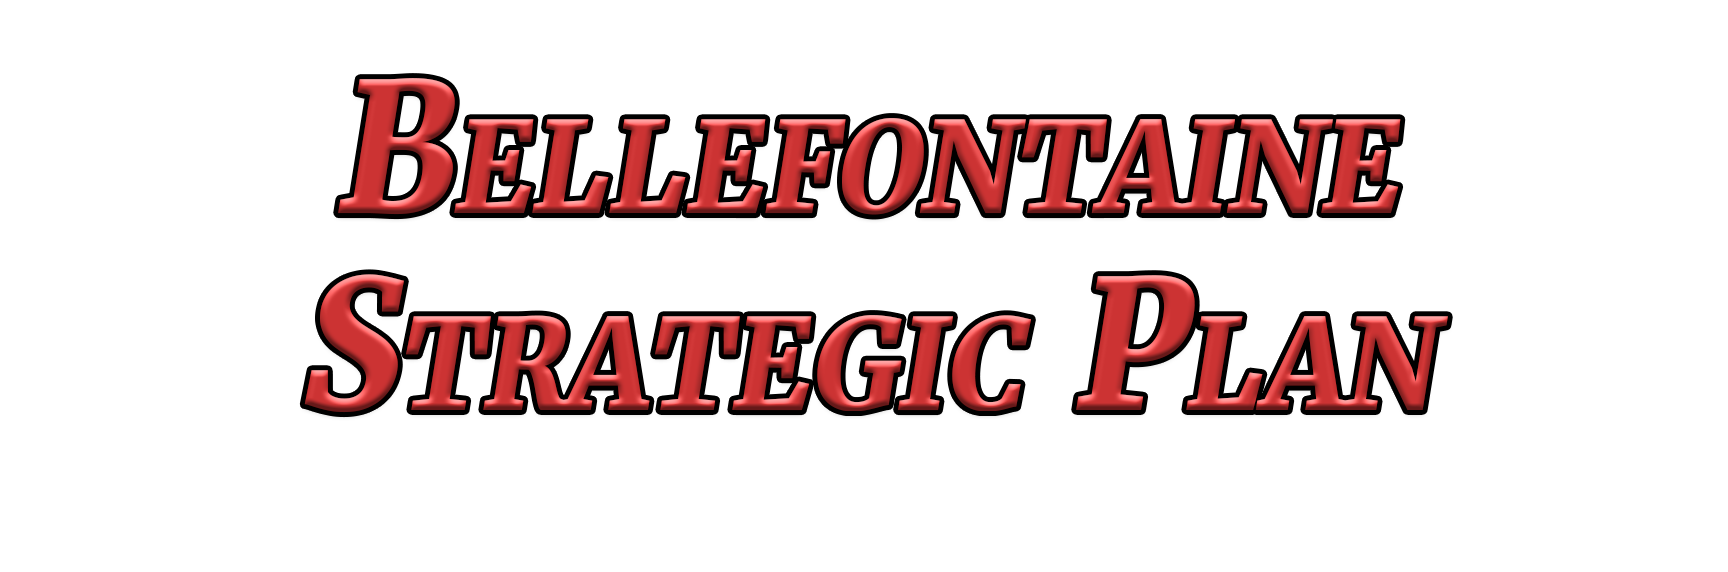 Bellefontaine Strategic Plan